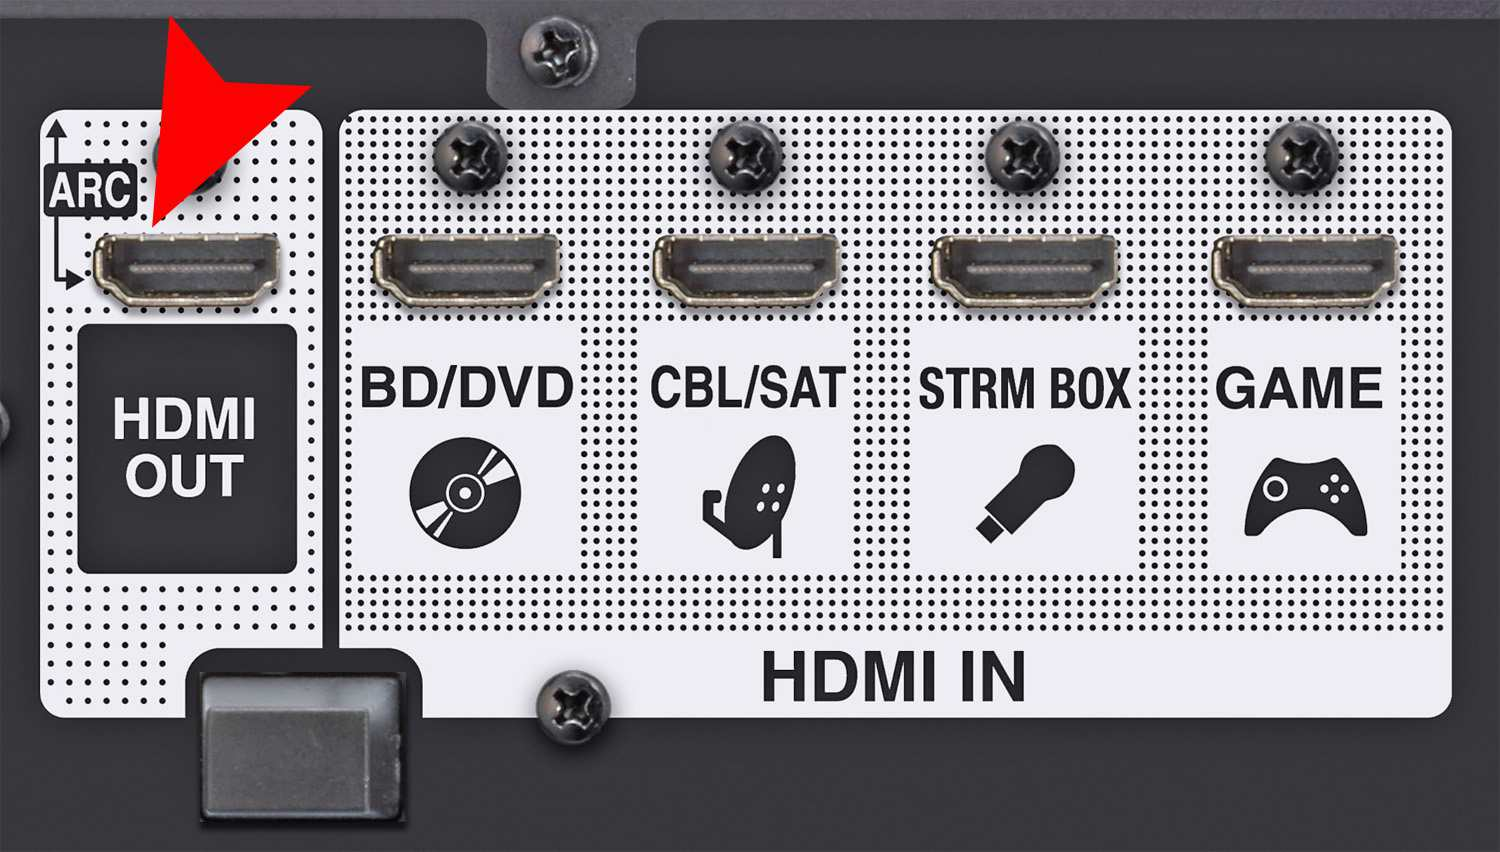 hight resolution of home theater receiver with hdmi arc connection